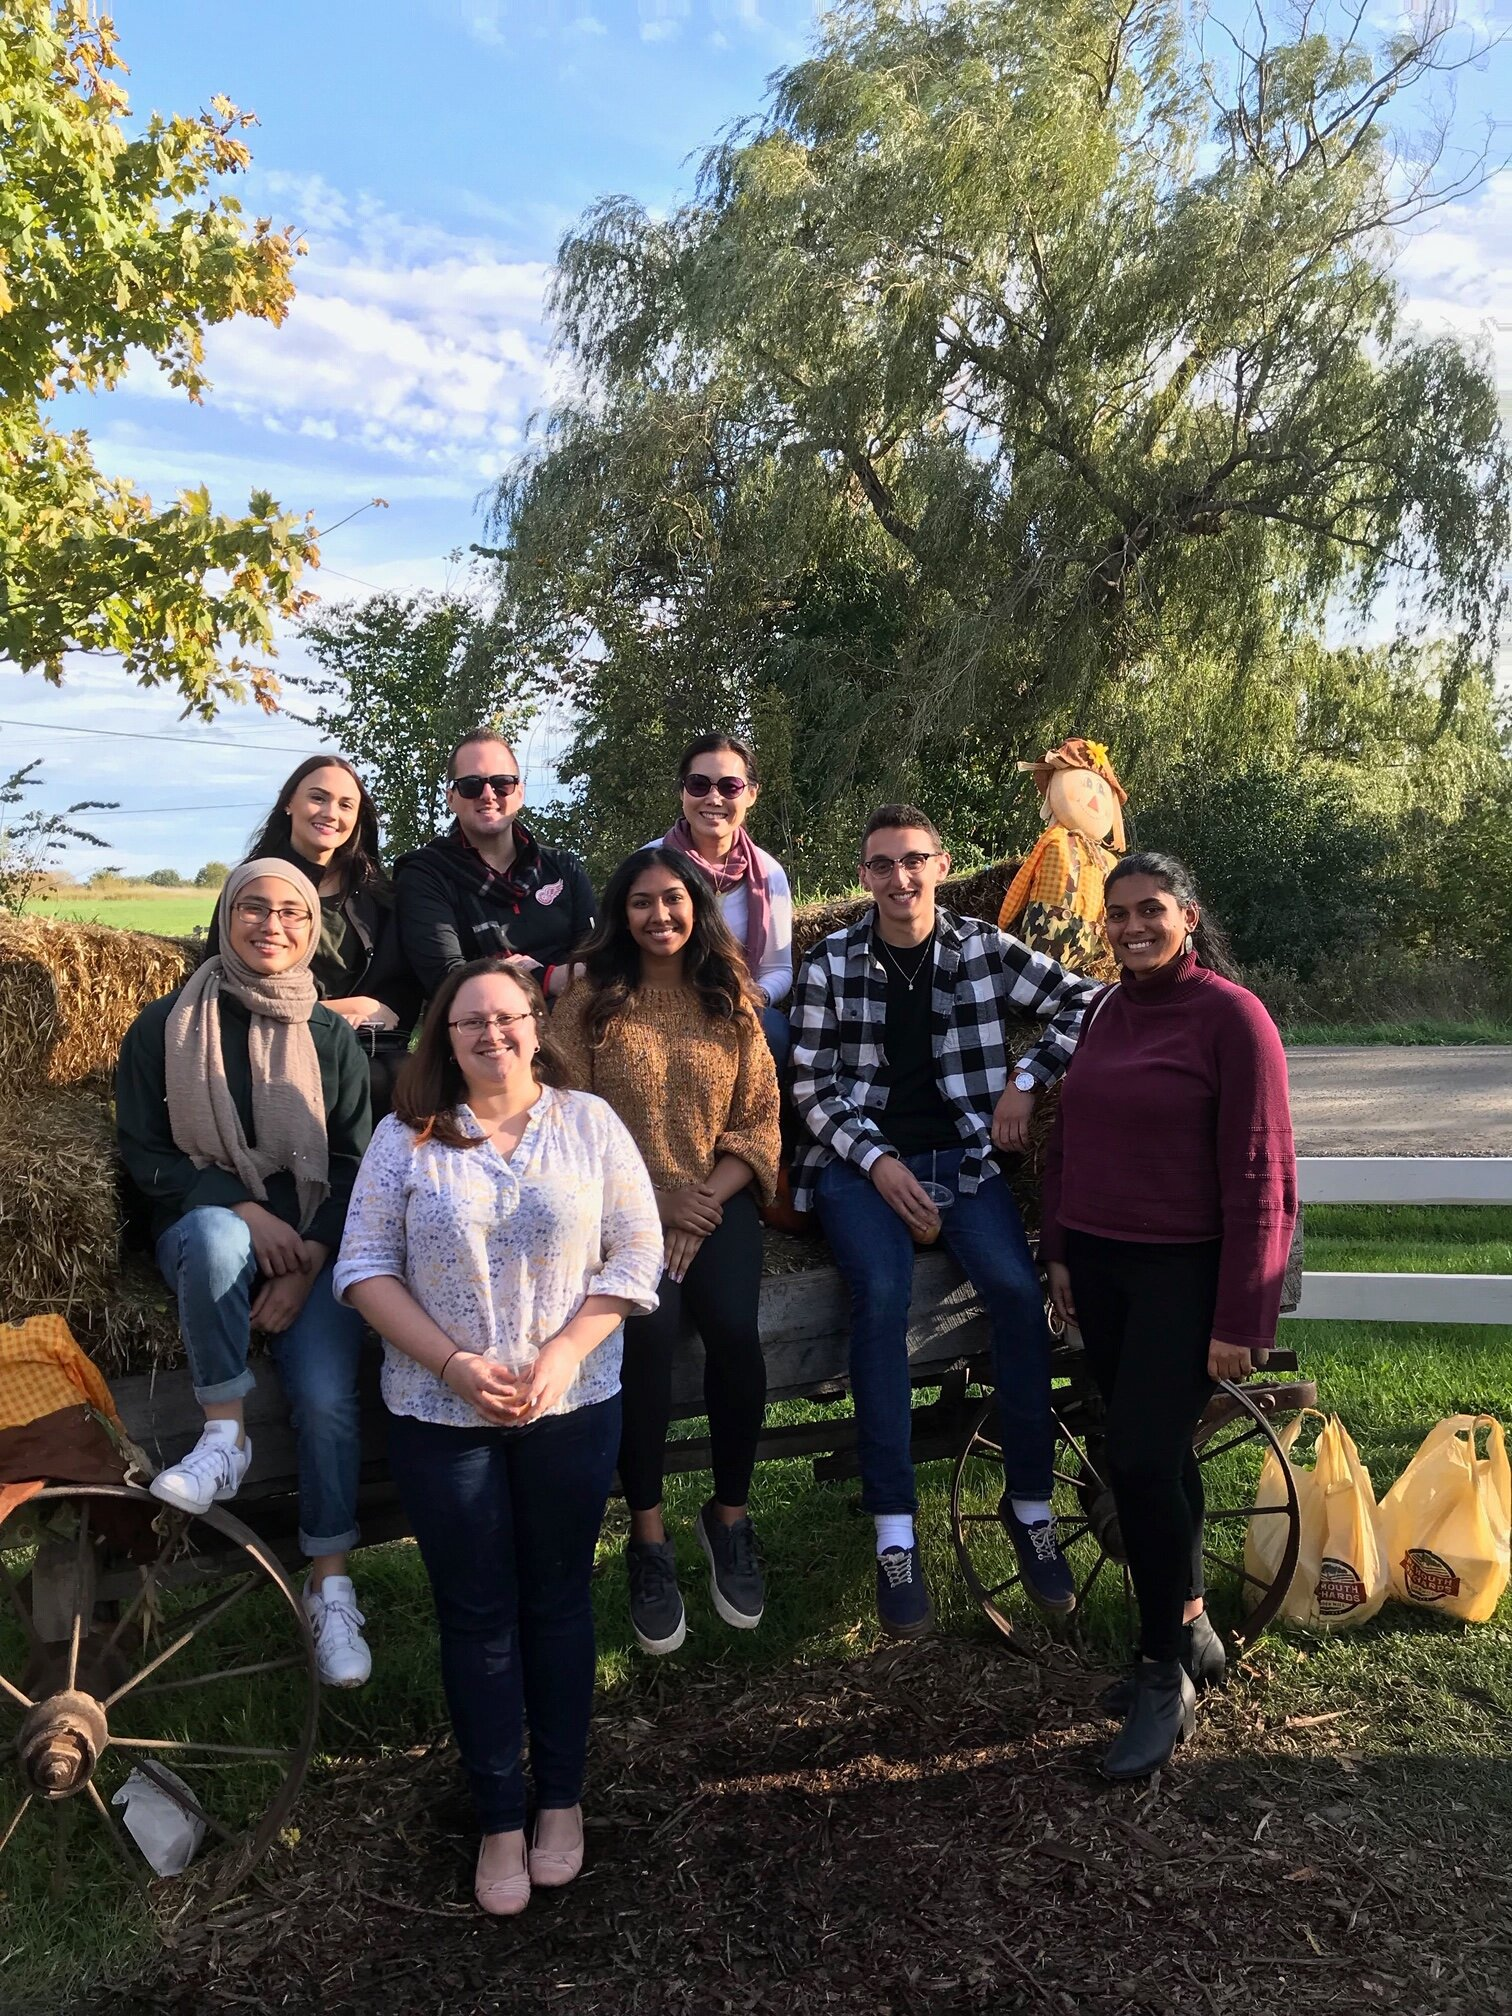 SNL Lab members at our Annual Fall Cider Mill Outing!